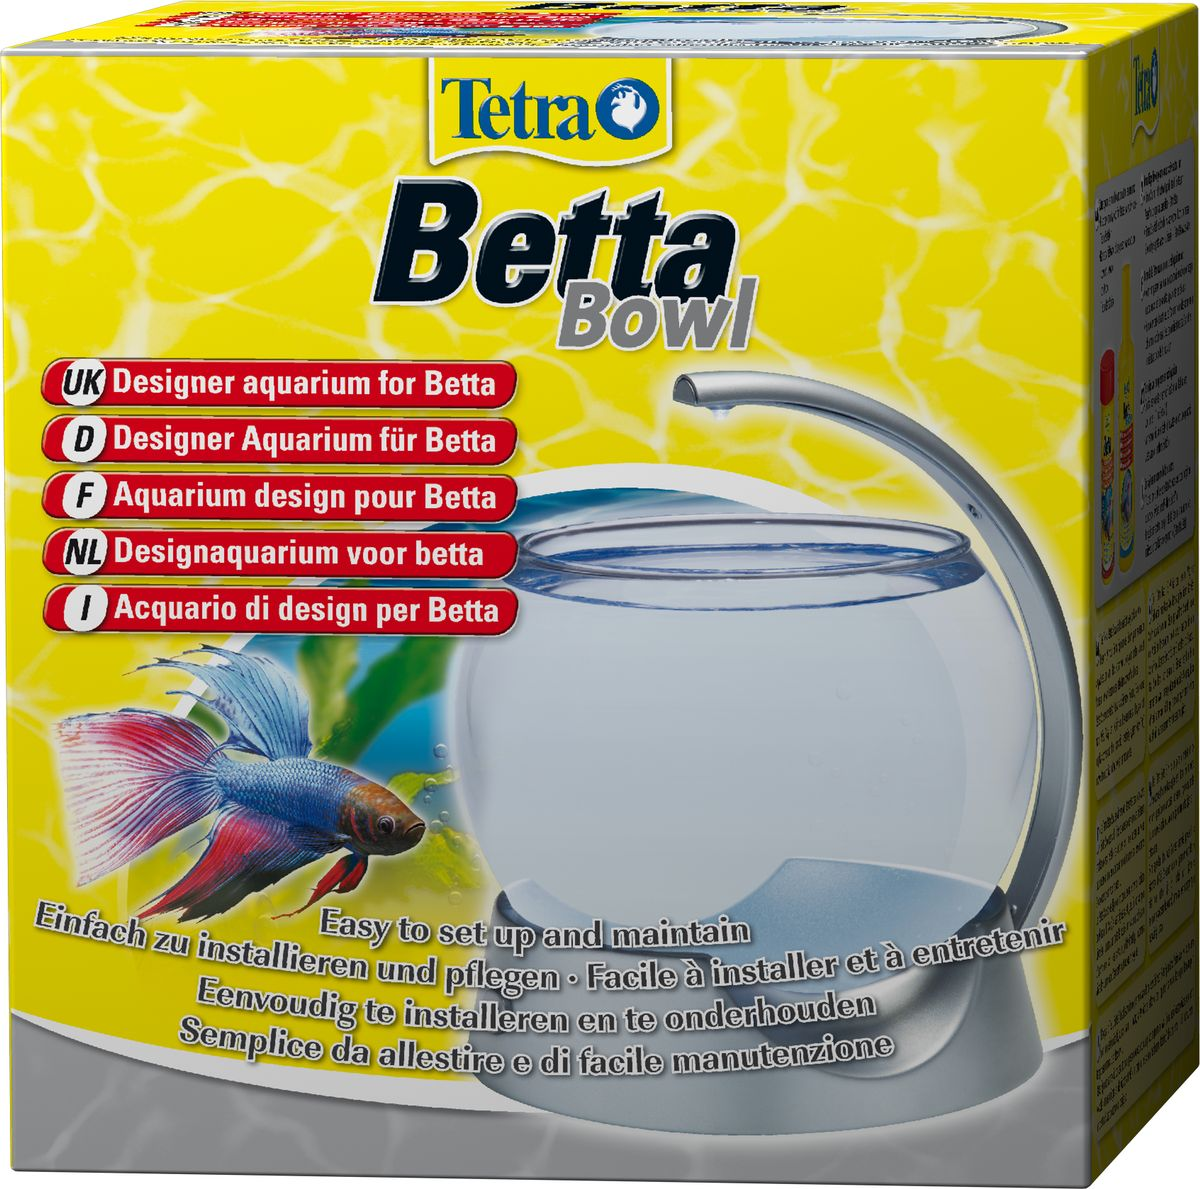 Аквариум-шар для петушков Tetra  Betta Bowl  с освещением, 1,8 л